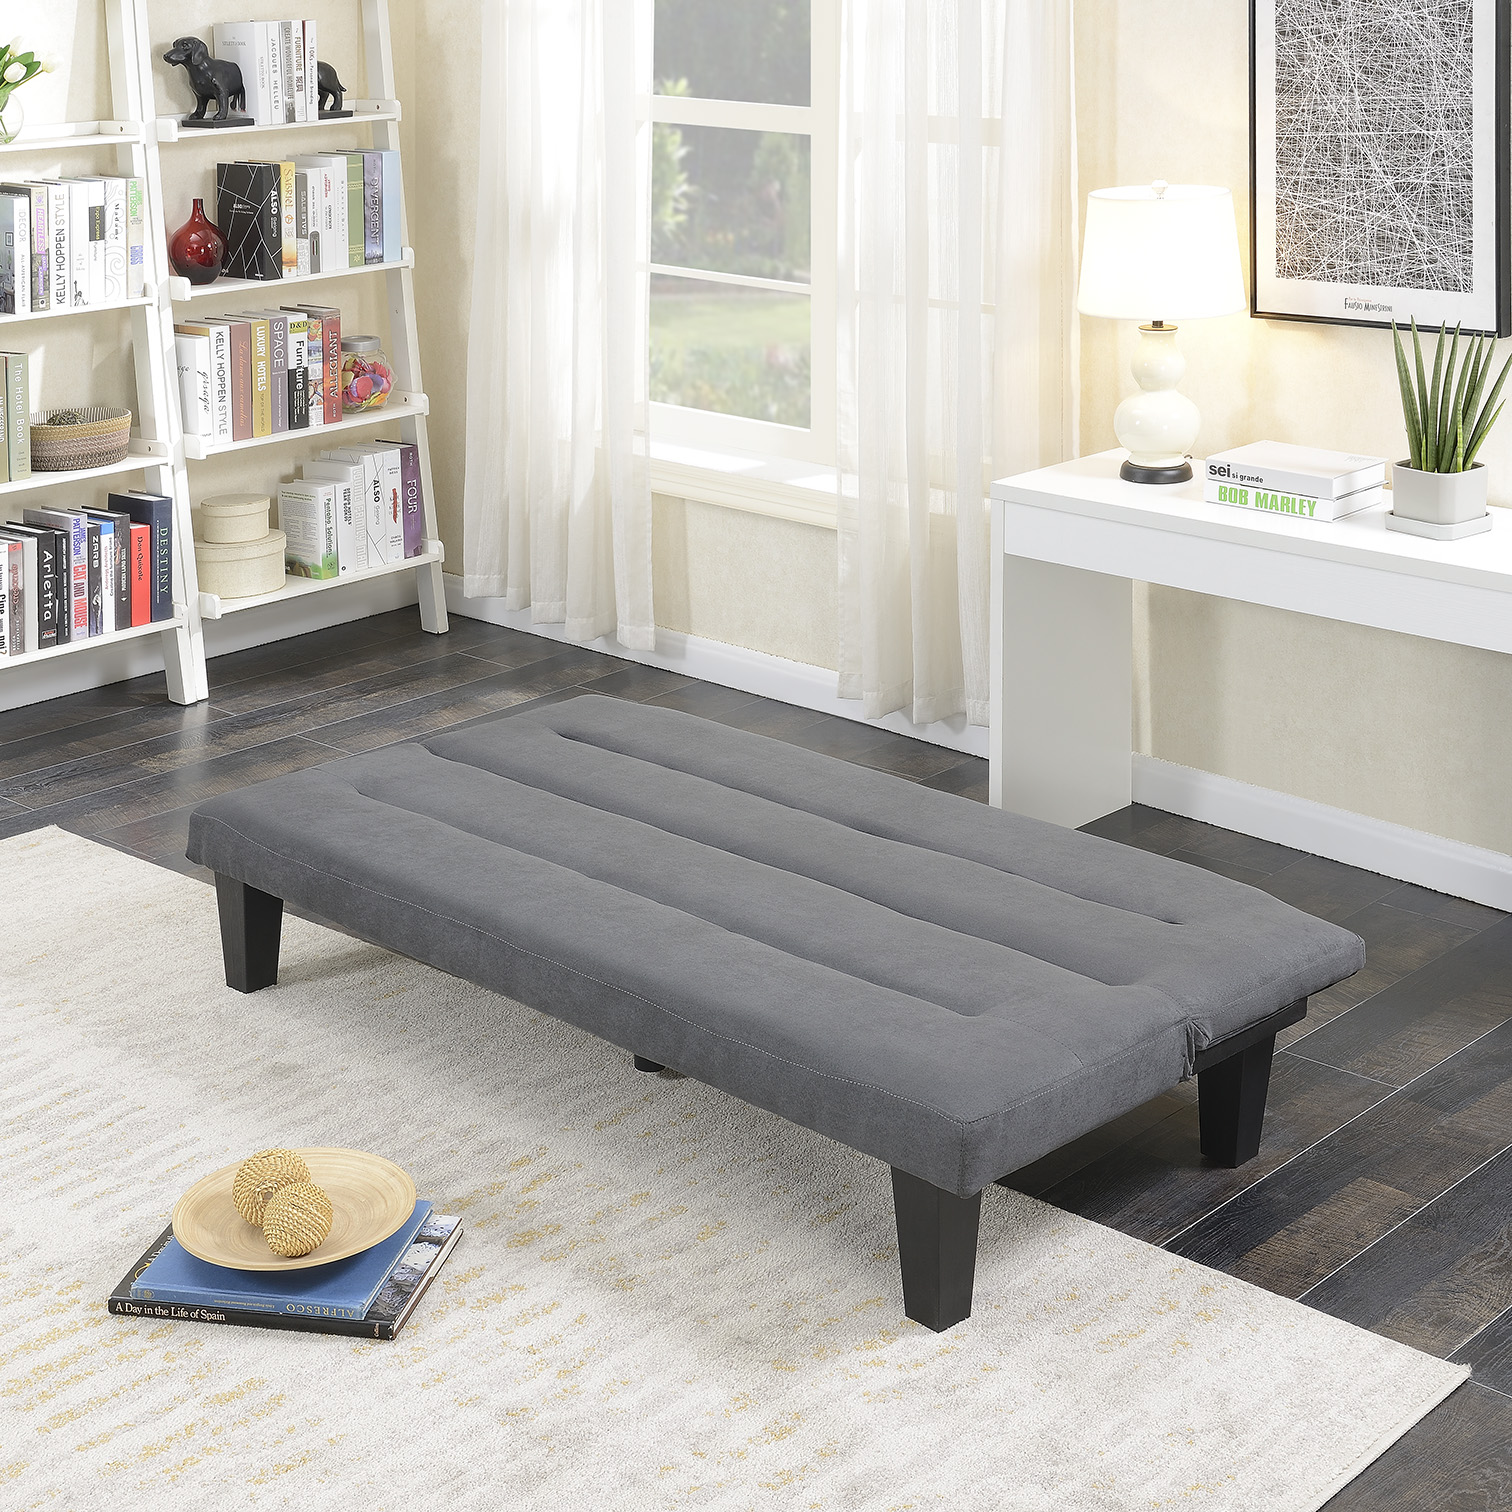 Modern-Style-Sofa-Bed-Futon-Couch-Sleeper-Lounge-Sleep-Dorm-Office-Microfiber